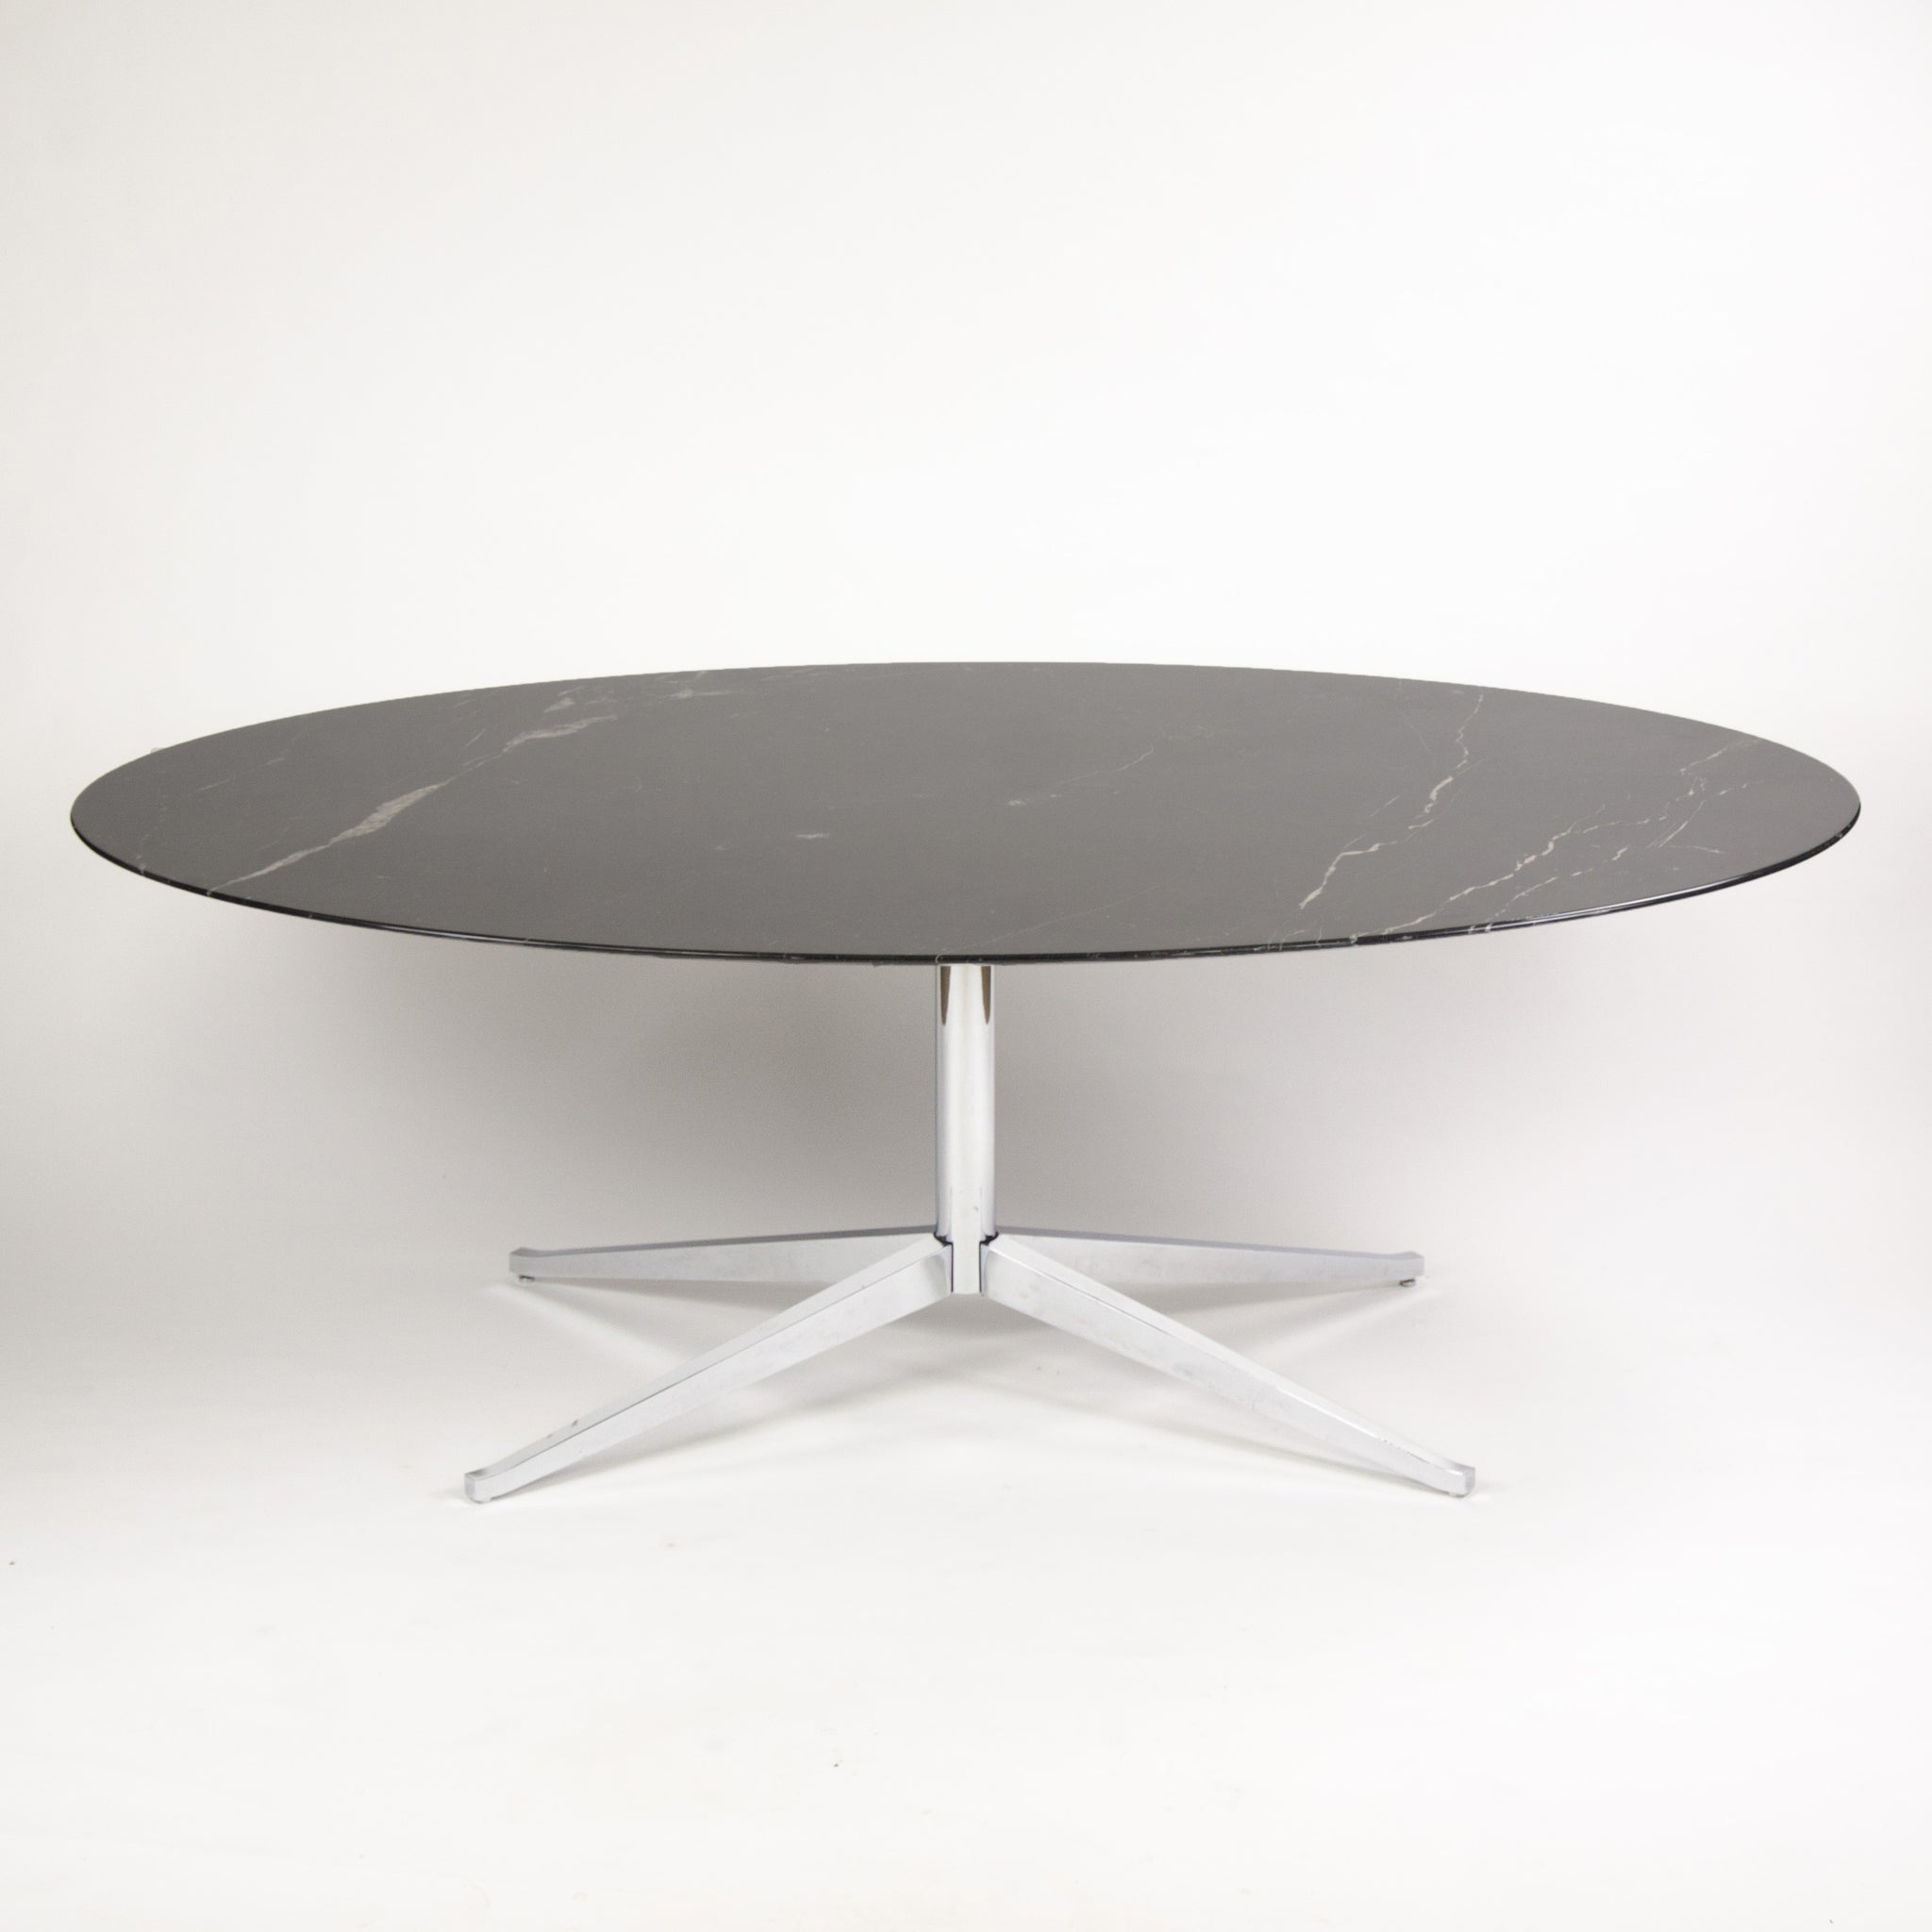 SOLD Florence Knoll 78 in Black Marble Dining Conference Table 2007 2x Available